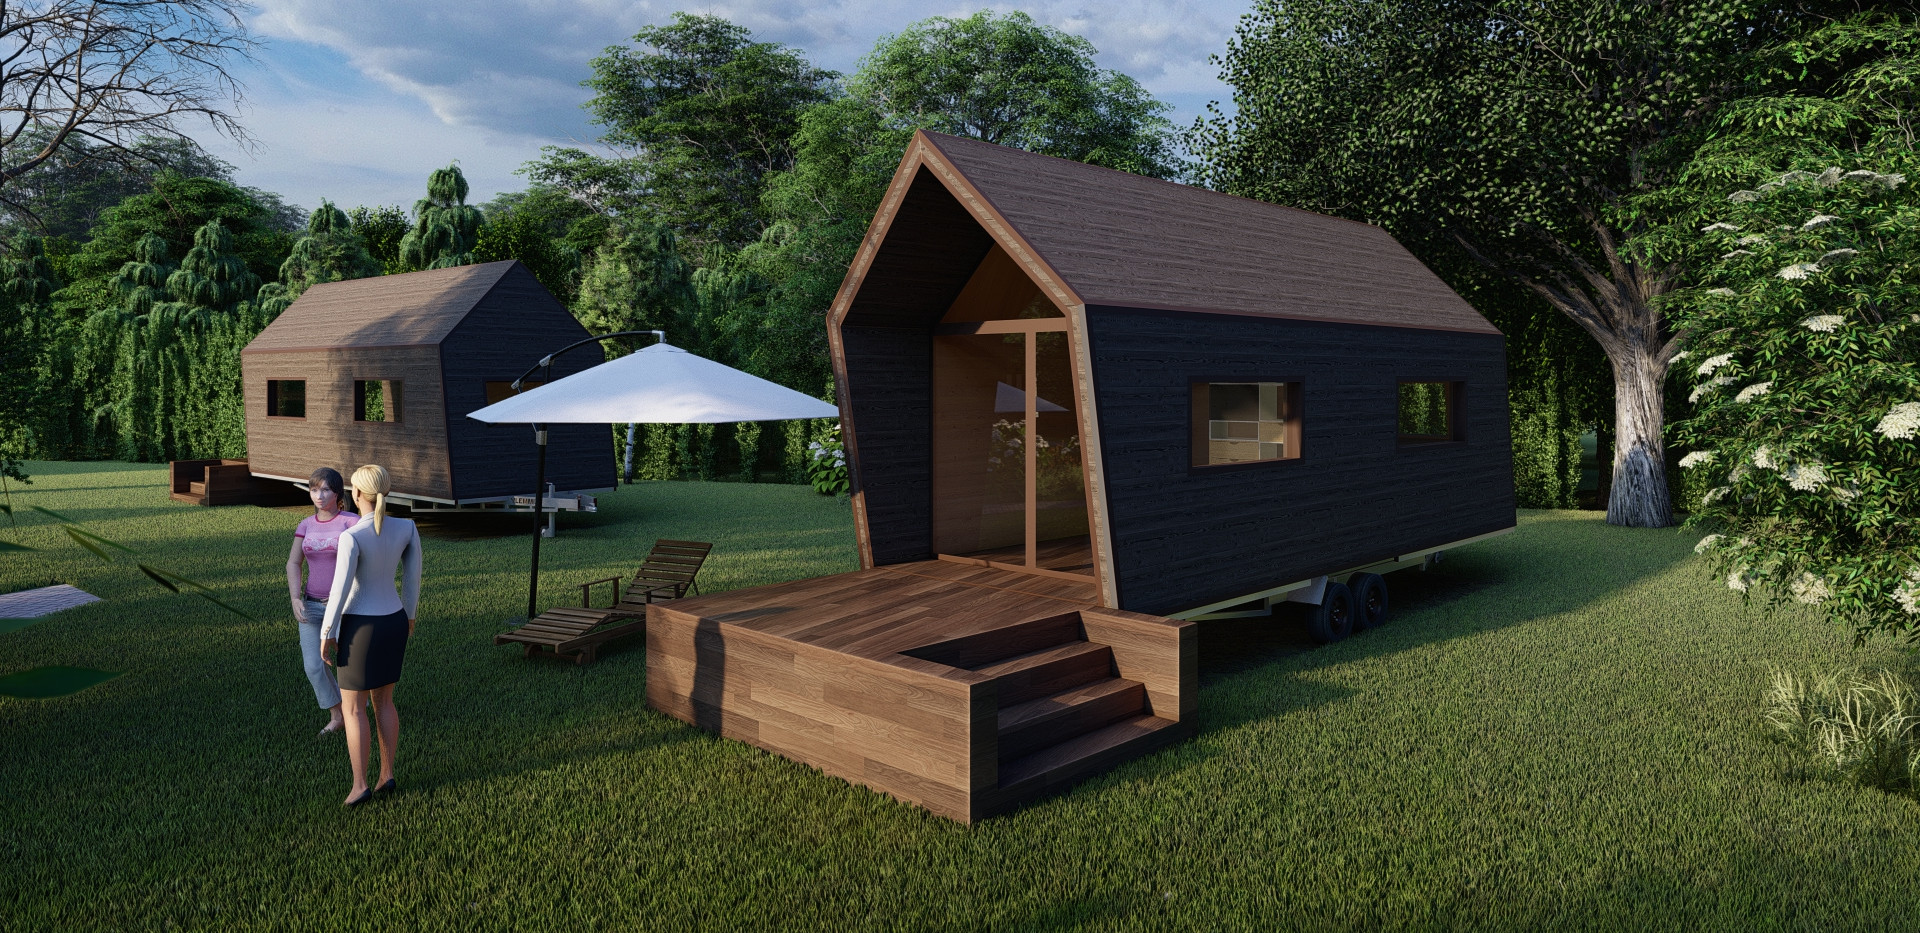 Tiny House Project Image 1.jpg